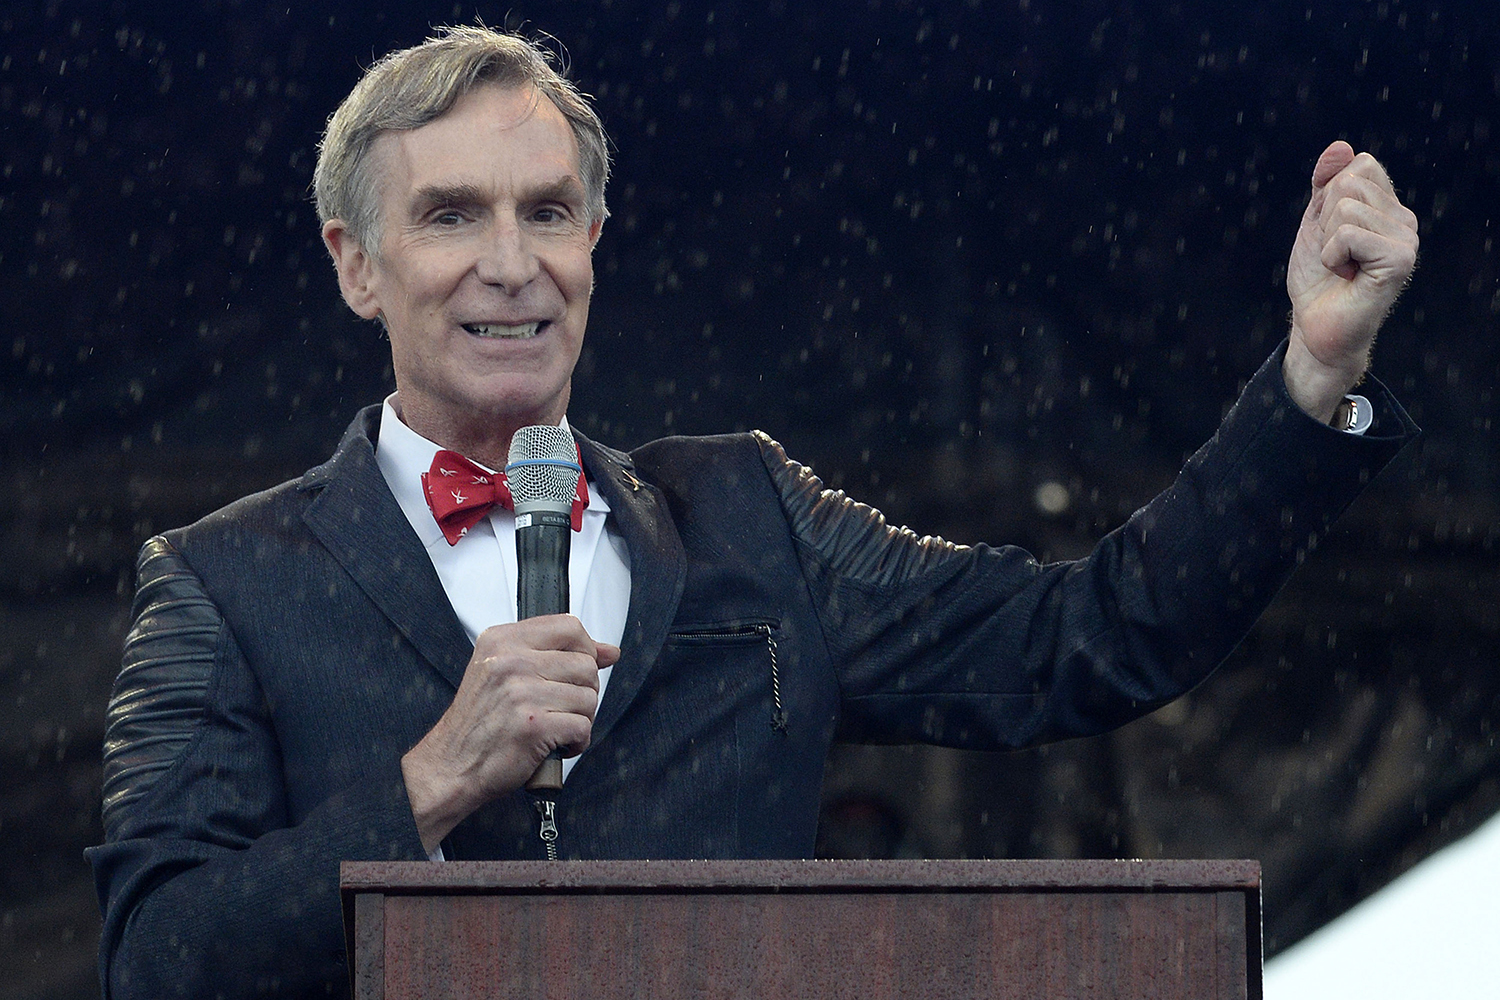 Thousands of scientists and their supporters, including Bill Nye the Science Guy, join the March for Science on April 22, 2017 in Washington, D.C. Nye is suing Walt Disney Co., claiming the company improperly kept millions of dollars in profits related to his popular TV series.